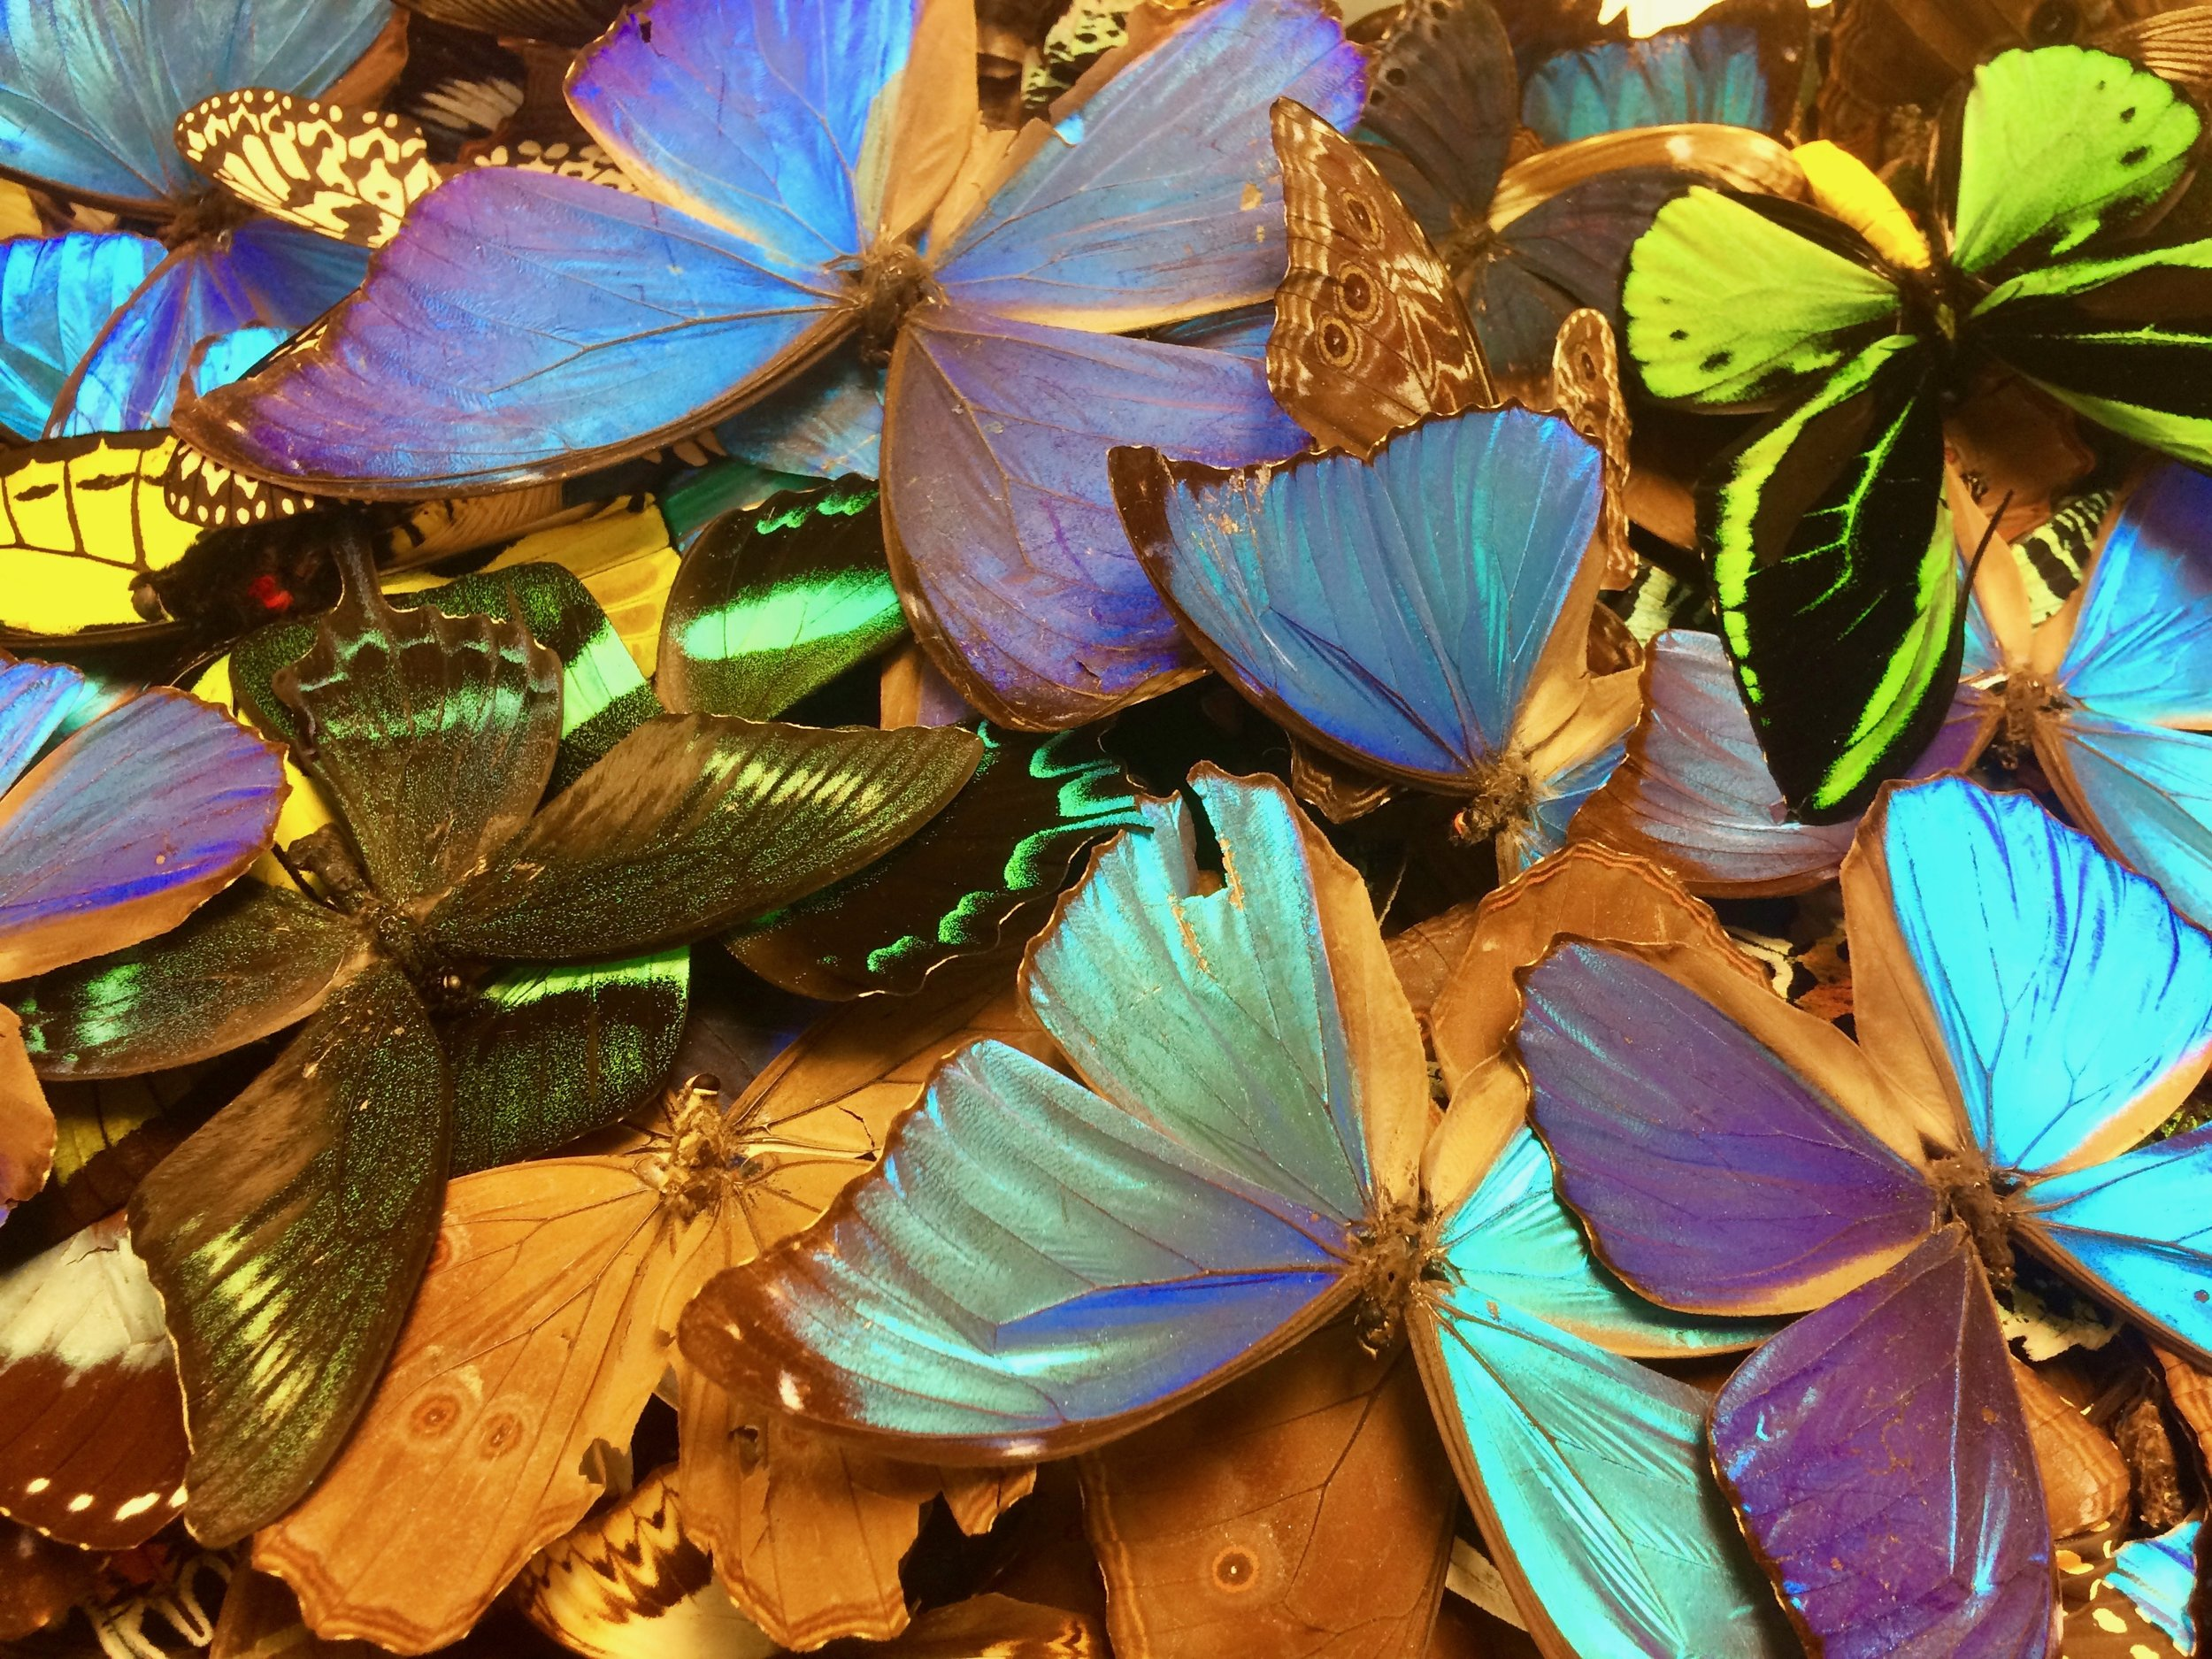 The Key West Butterfly & Nature Conservatory